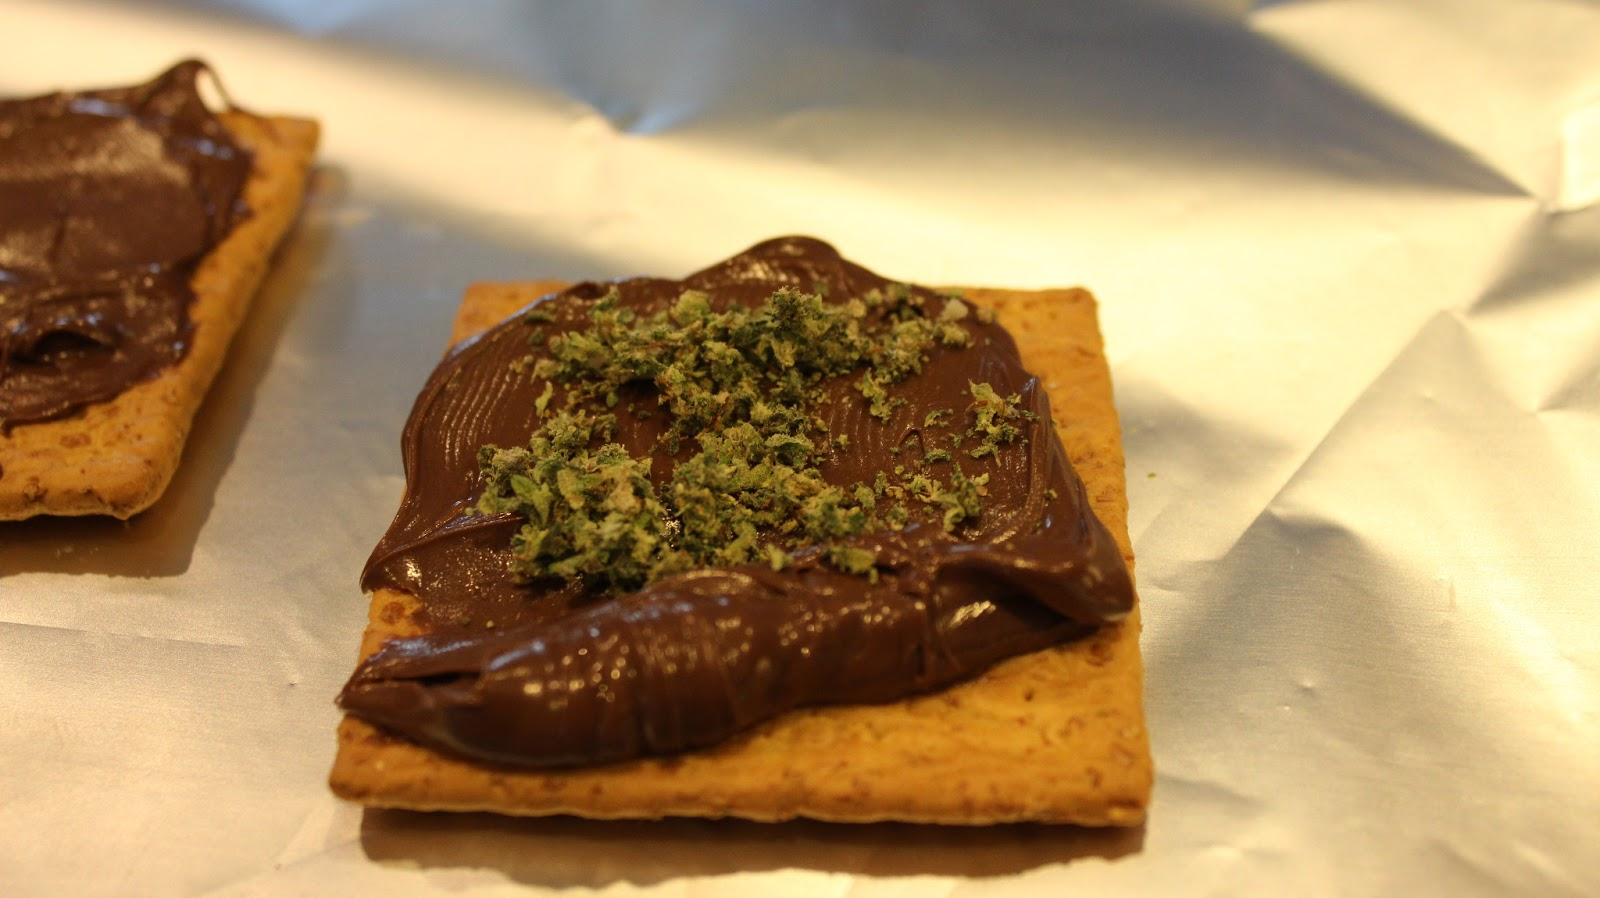 How To Make Chocolate Weed Cake With G